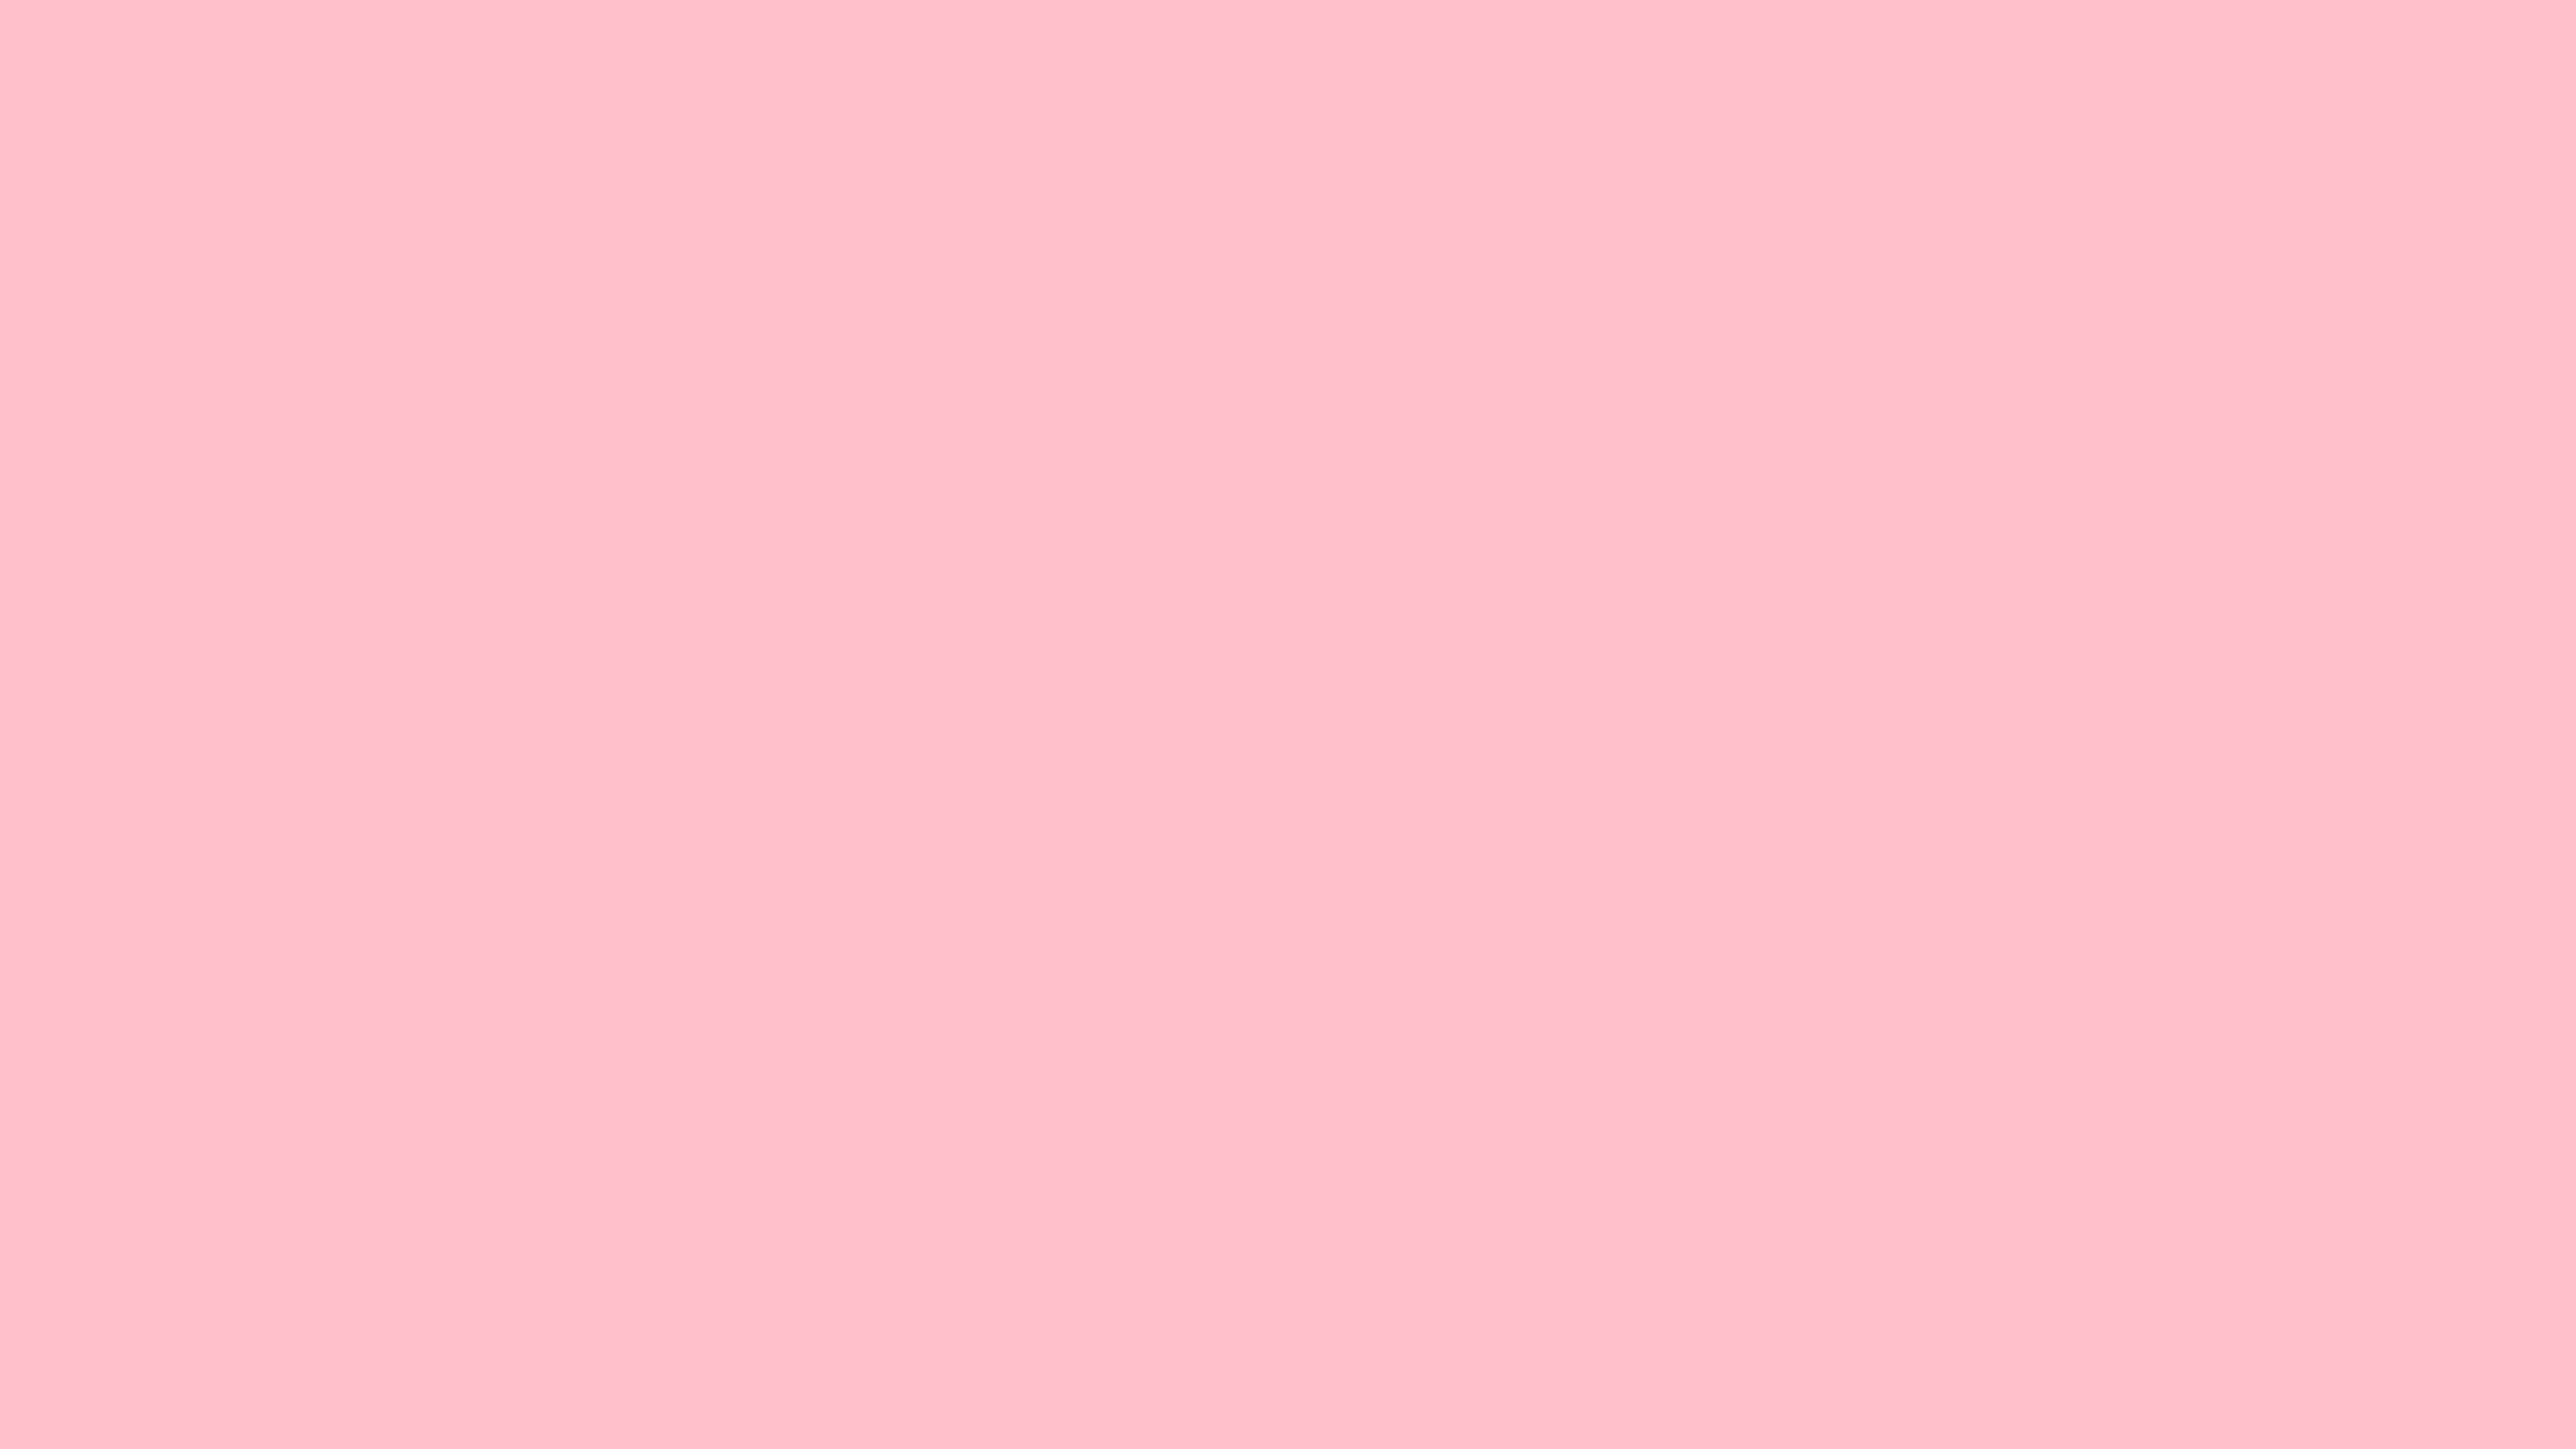 5120x2880 Pink Solid Color Background